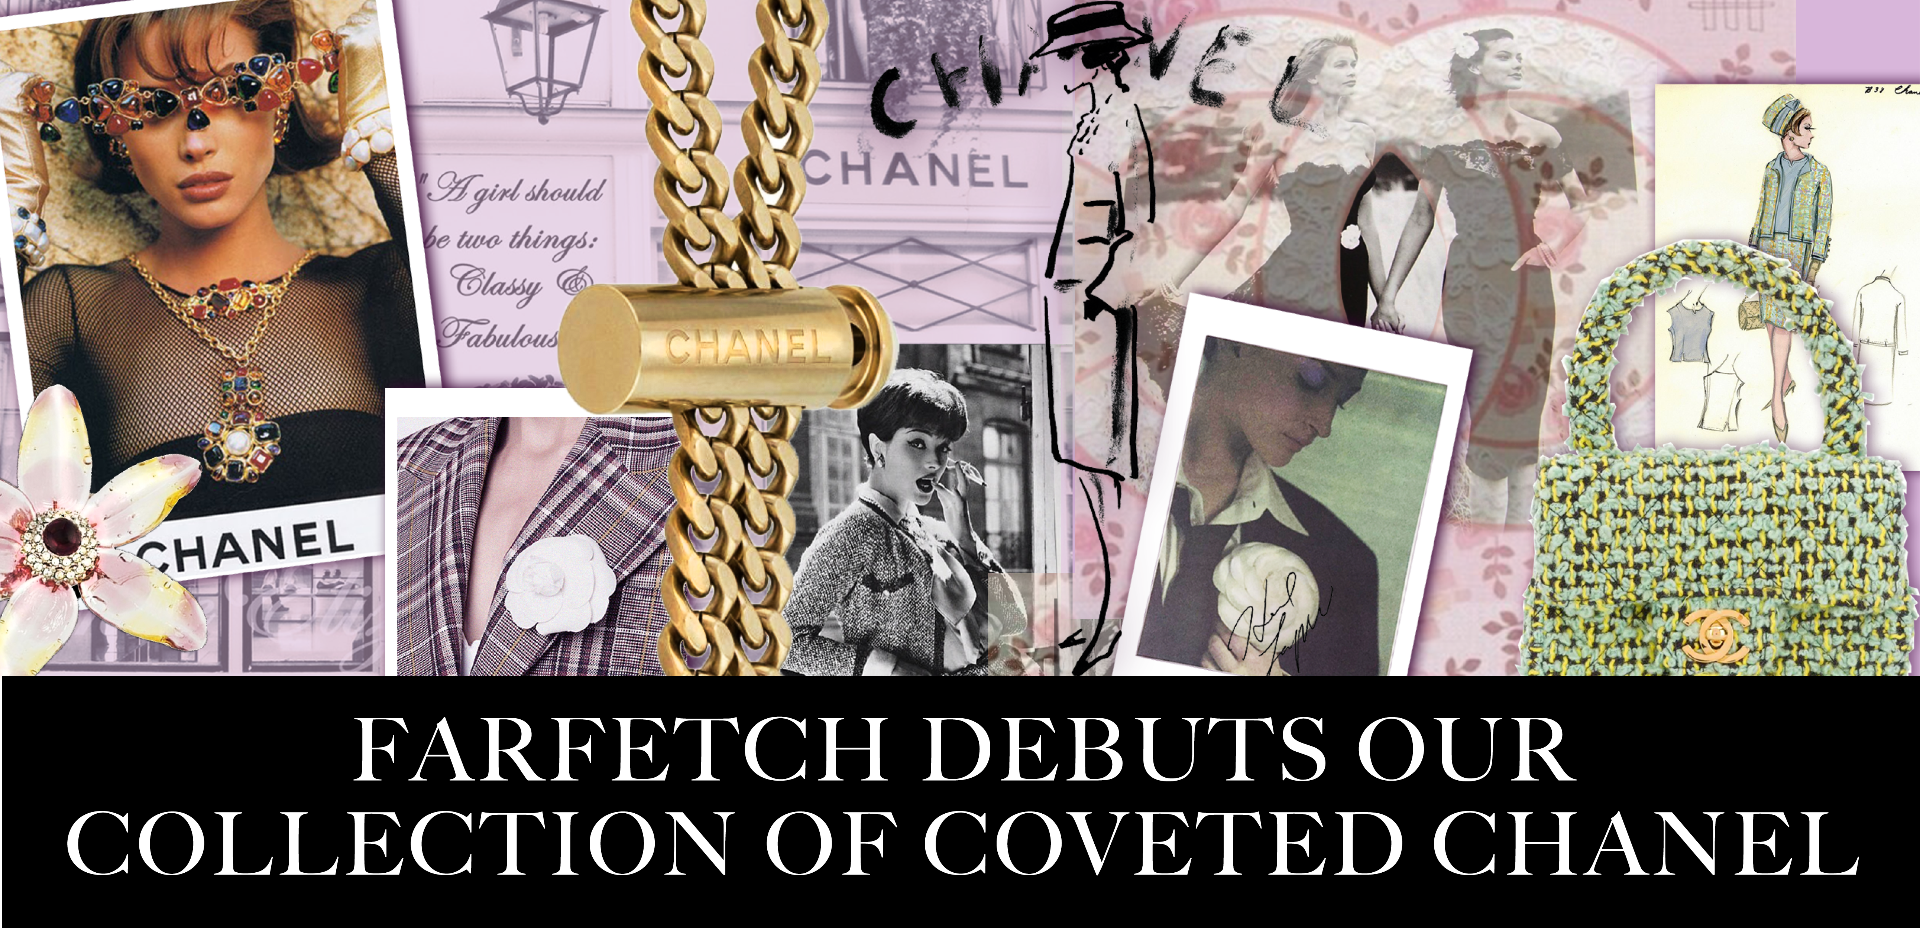 chanel-farfetch banner